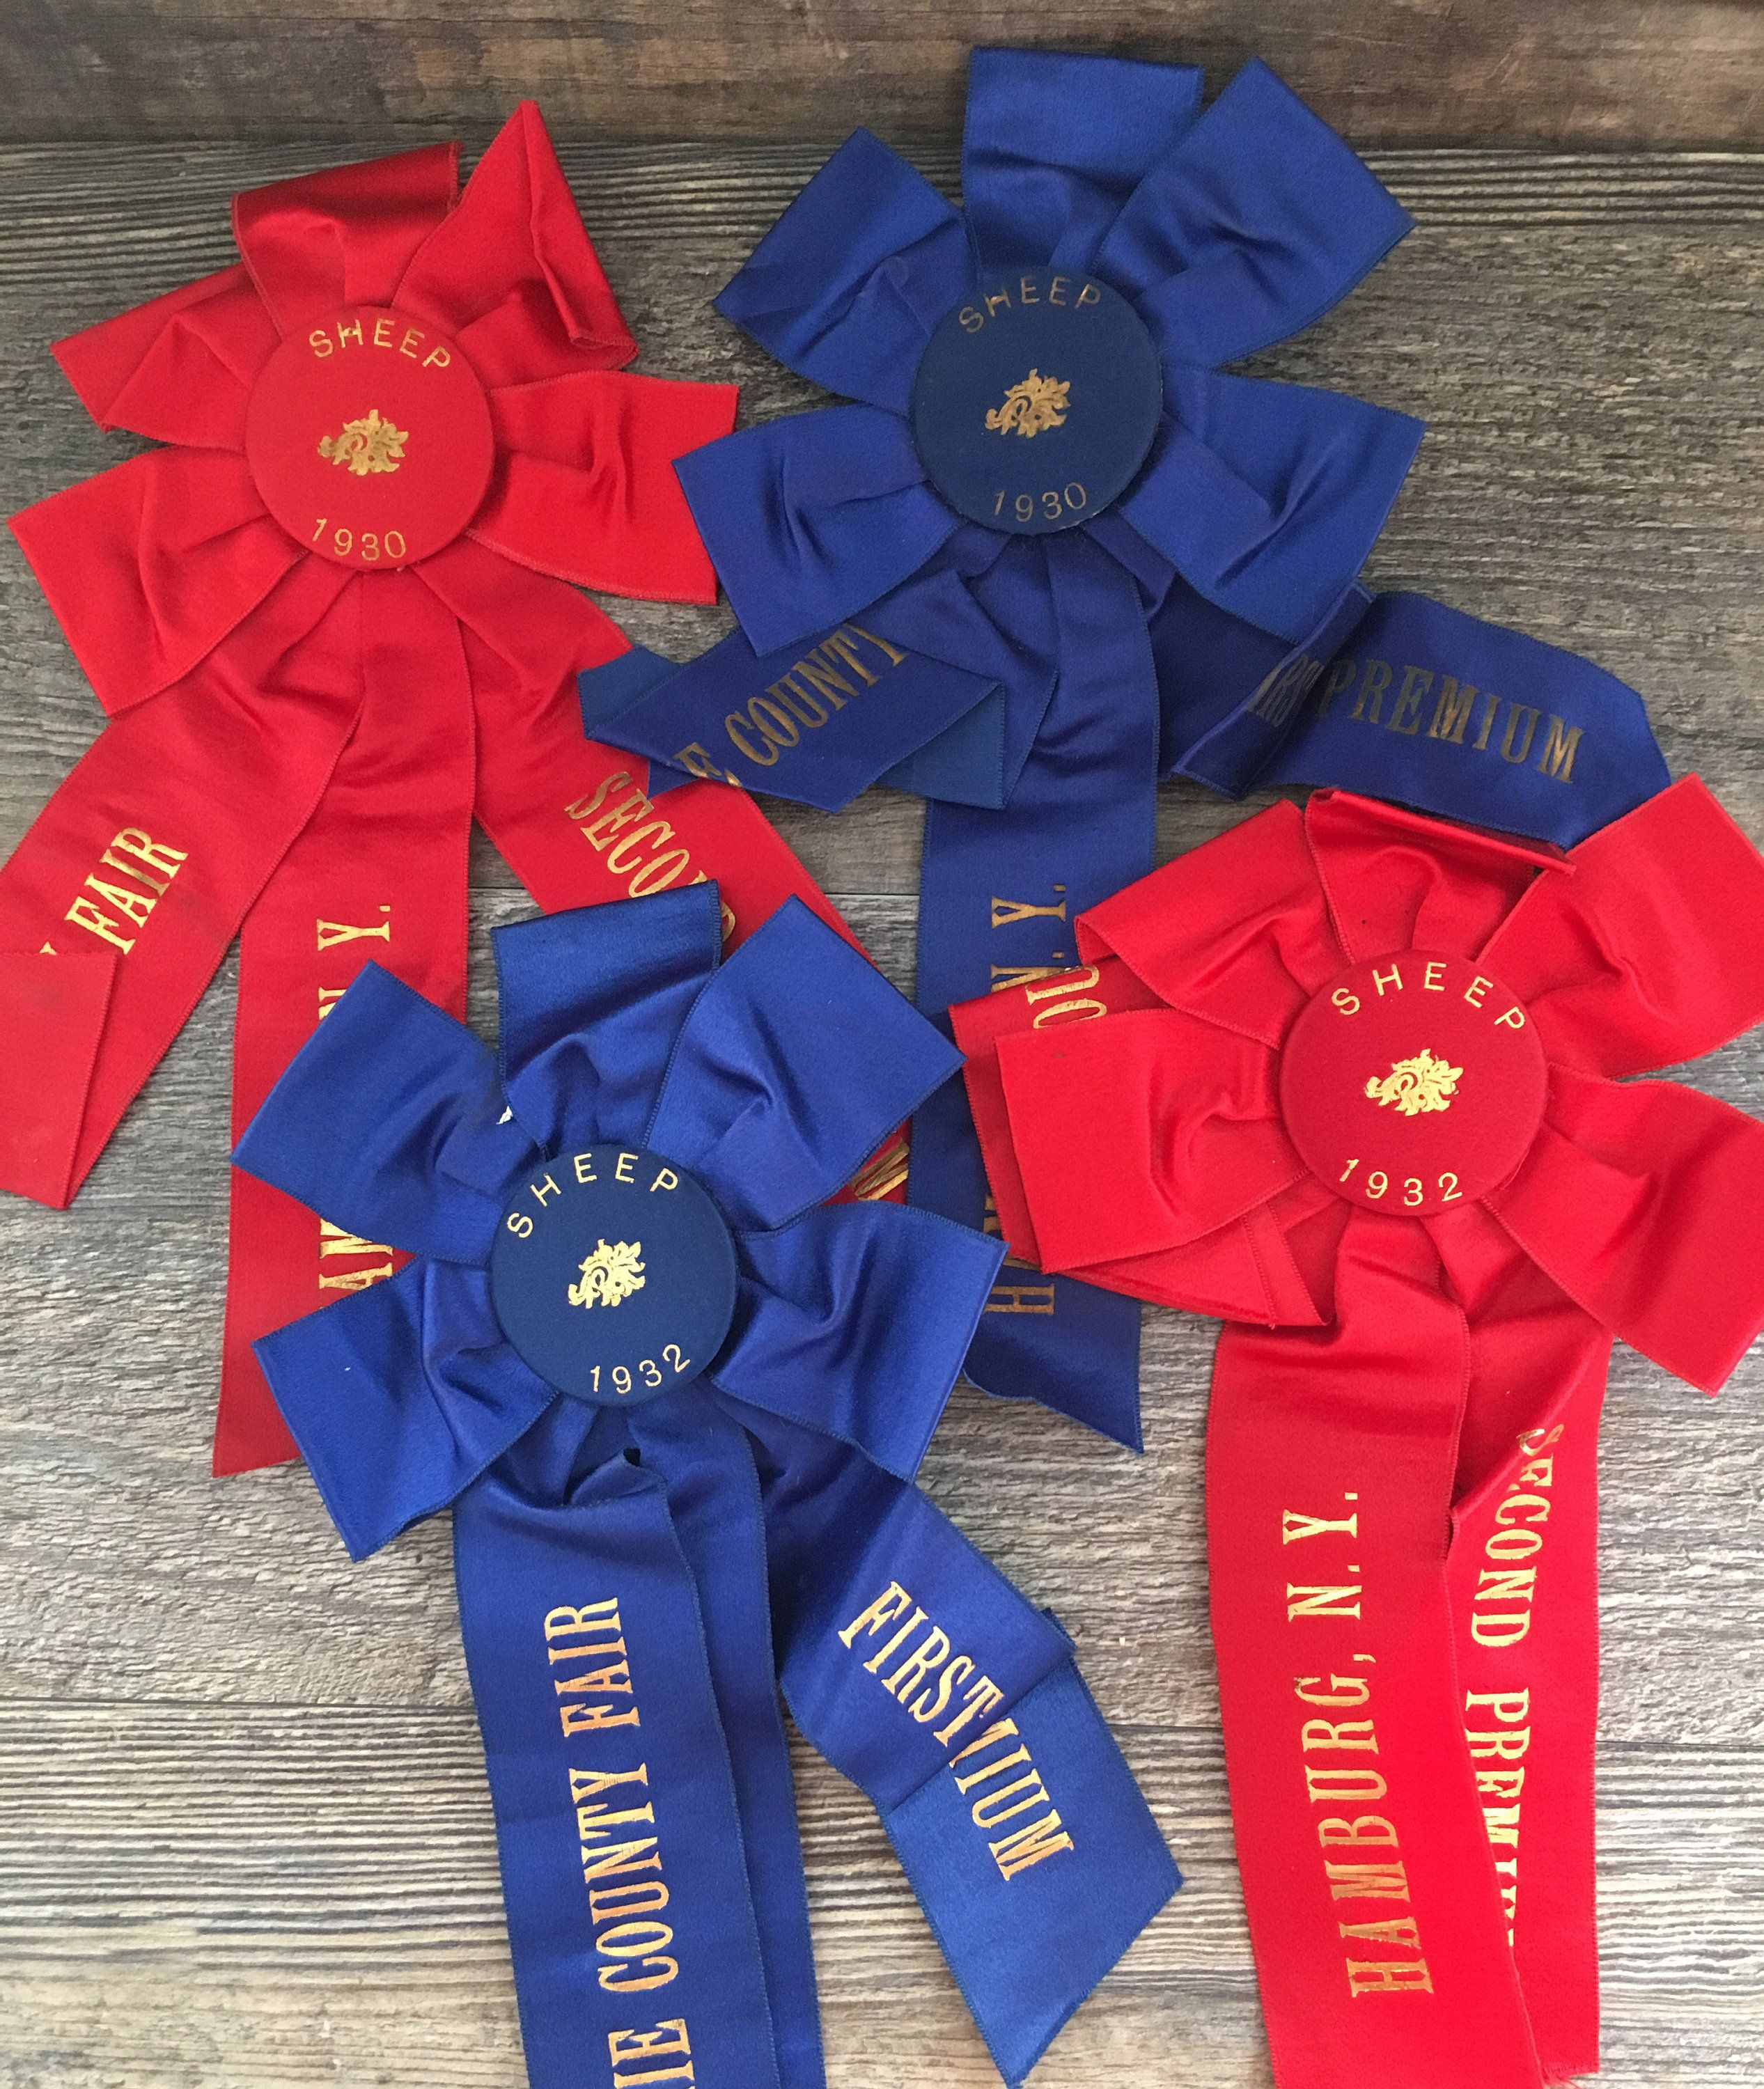 Set of 4 Vintage 1930's Sheep County Fair Red and Blue